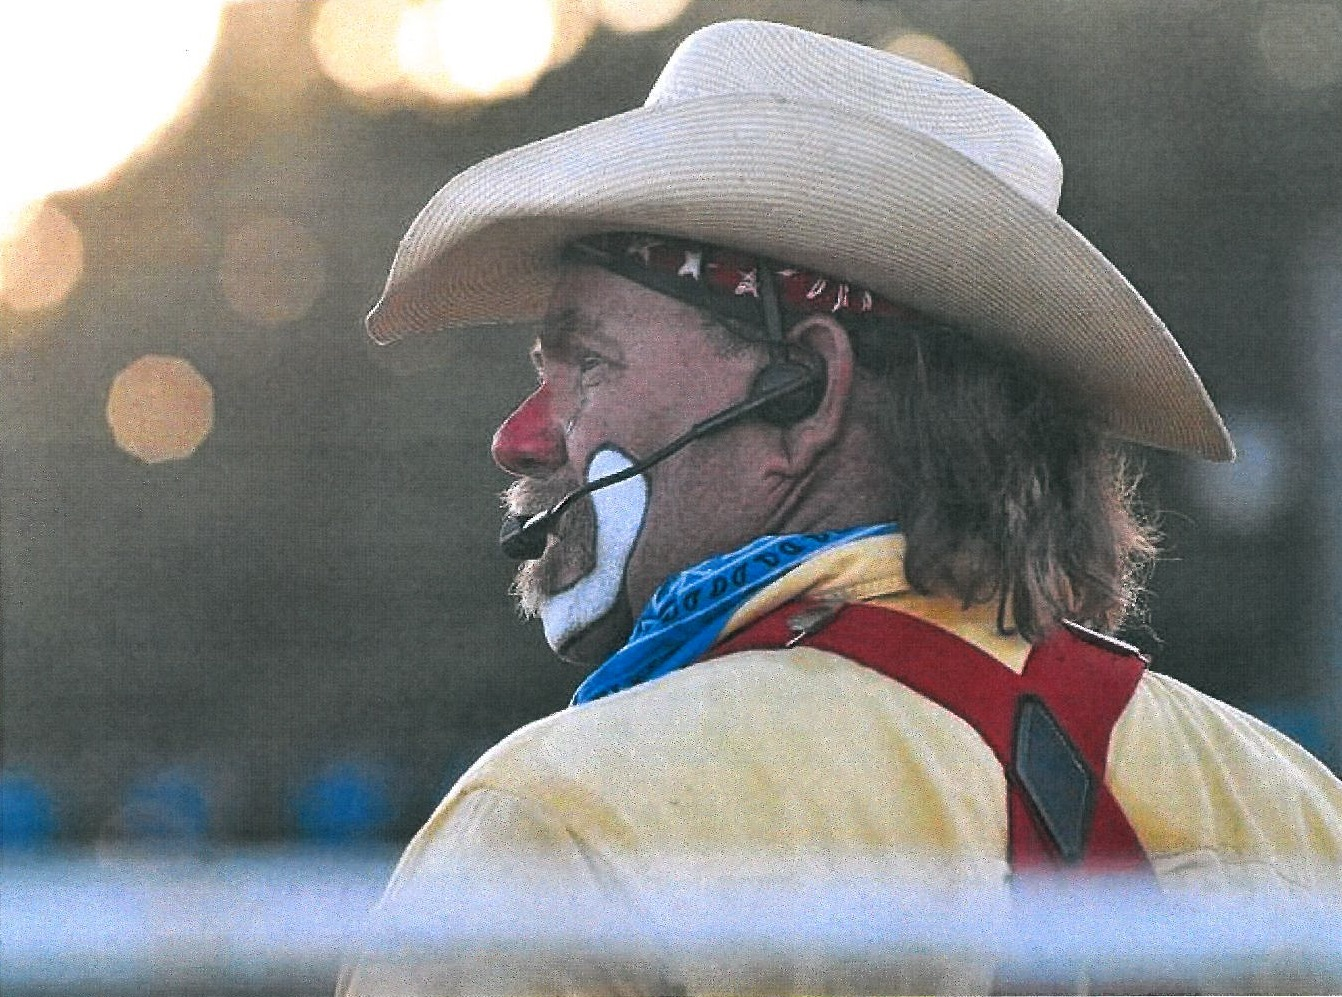 Rodeo clown-funnyman Bob Courtney, Branson, Missouri, will entertain and help save cowboys from mean bulls at the 45th annual Santa Fe Trail Rodeo, Friday and Saturday evenings, May 15-16, in Burlingame.